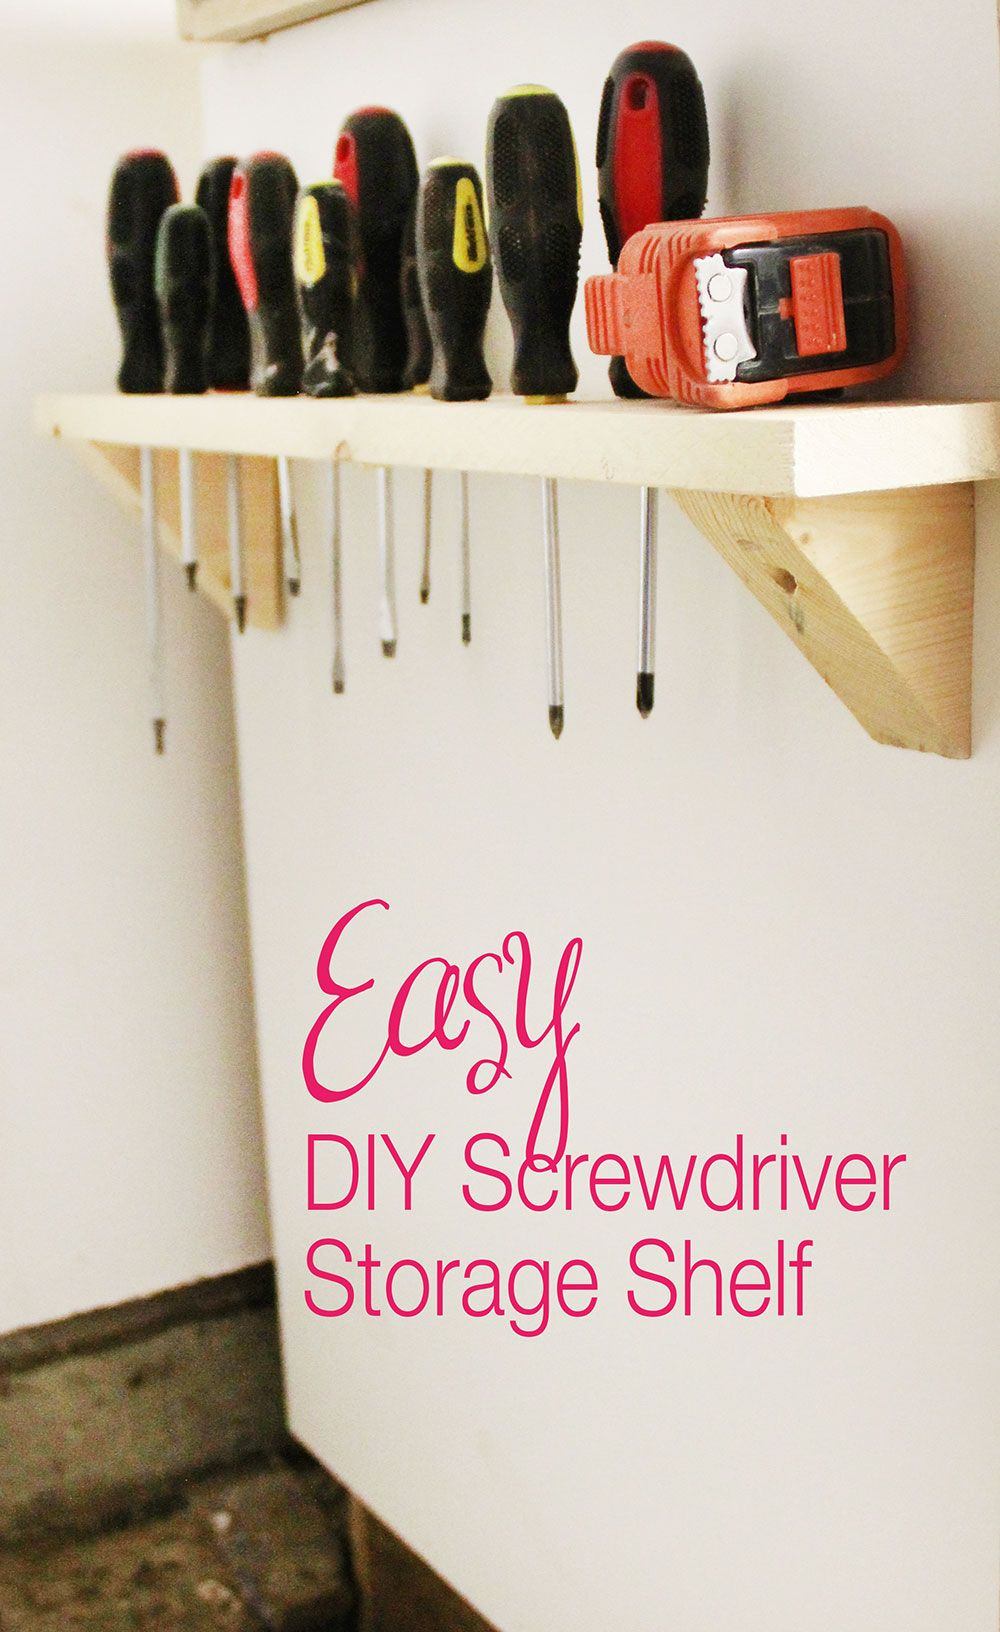 Shelf for screwdriver storage